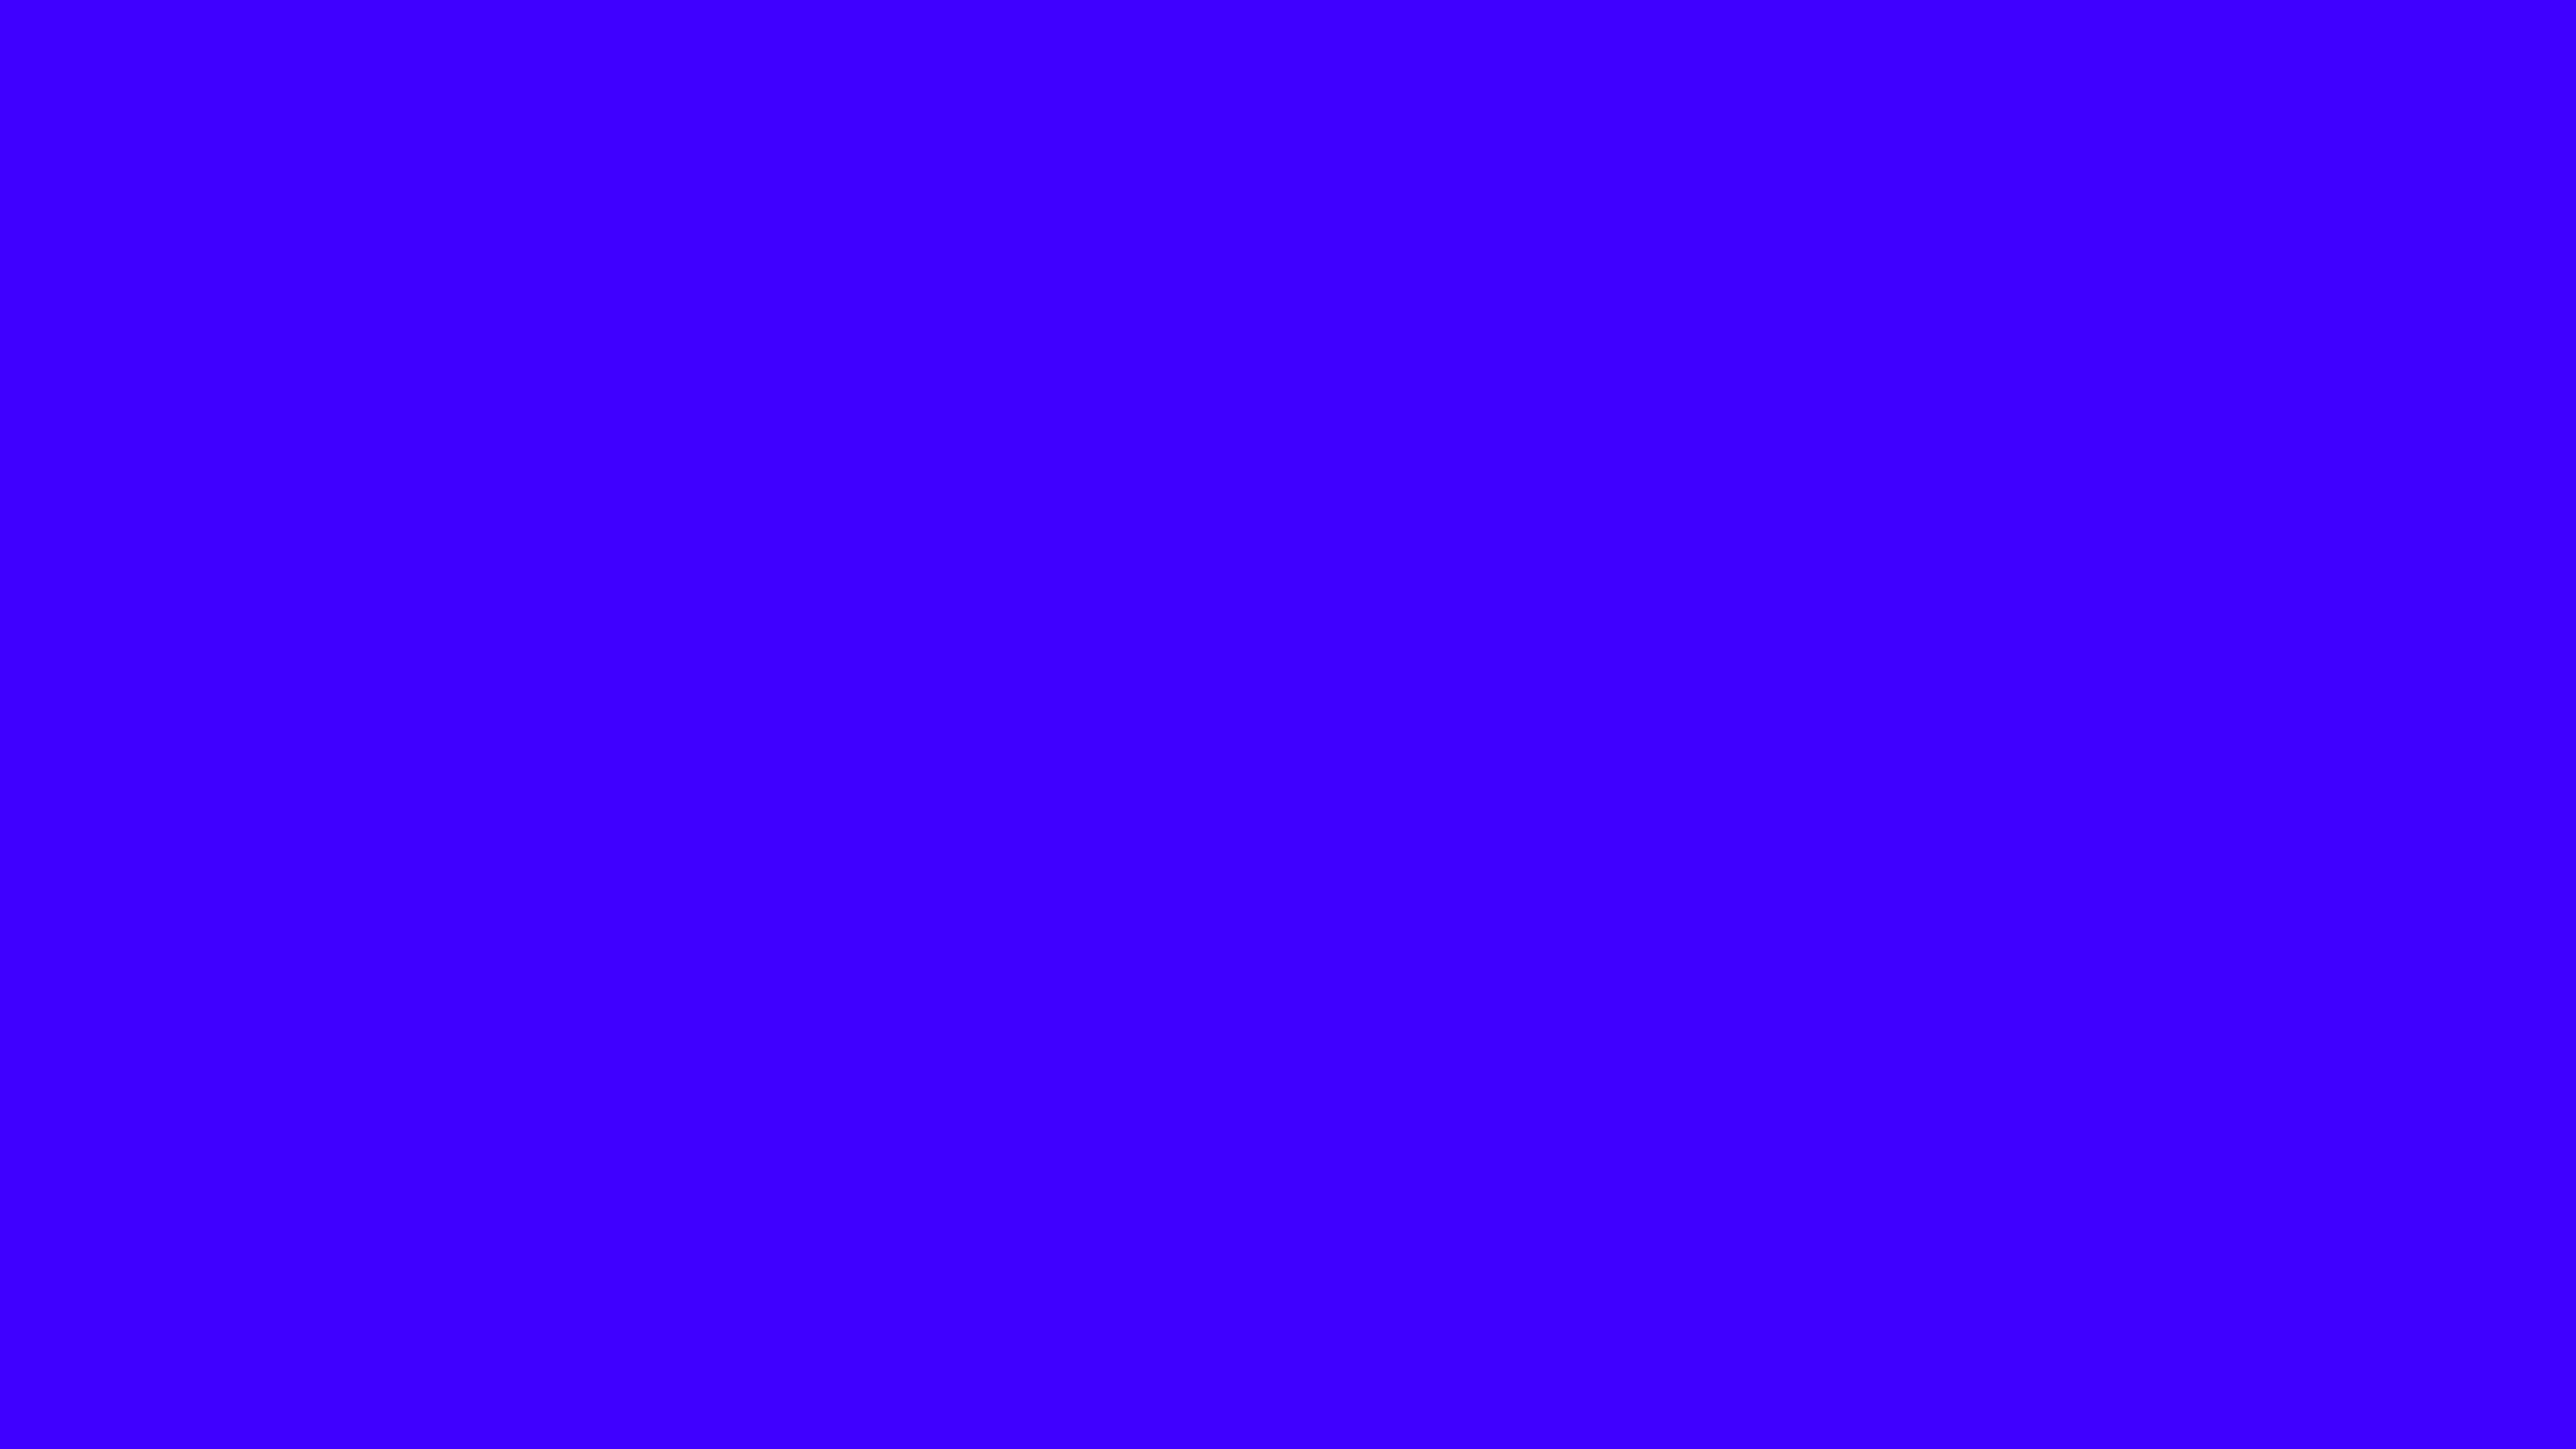 5120x2880 Electric Ultramarine Solid Color Background 5120x2880